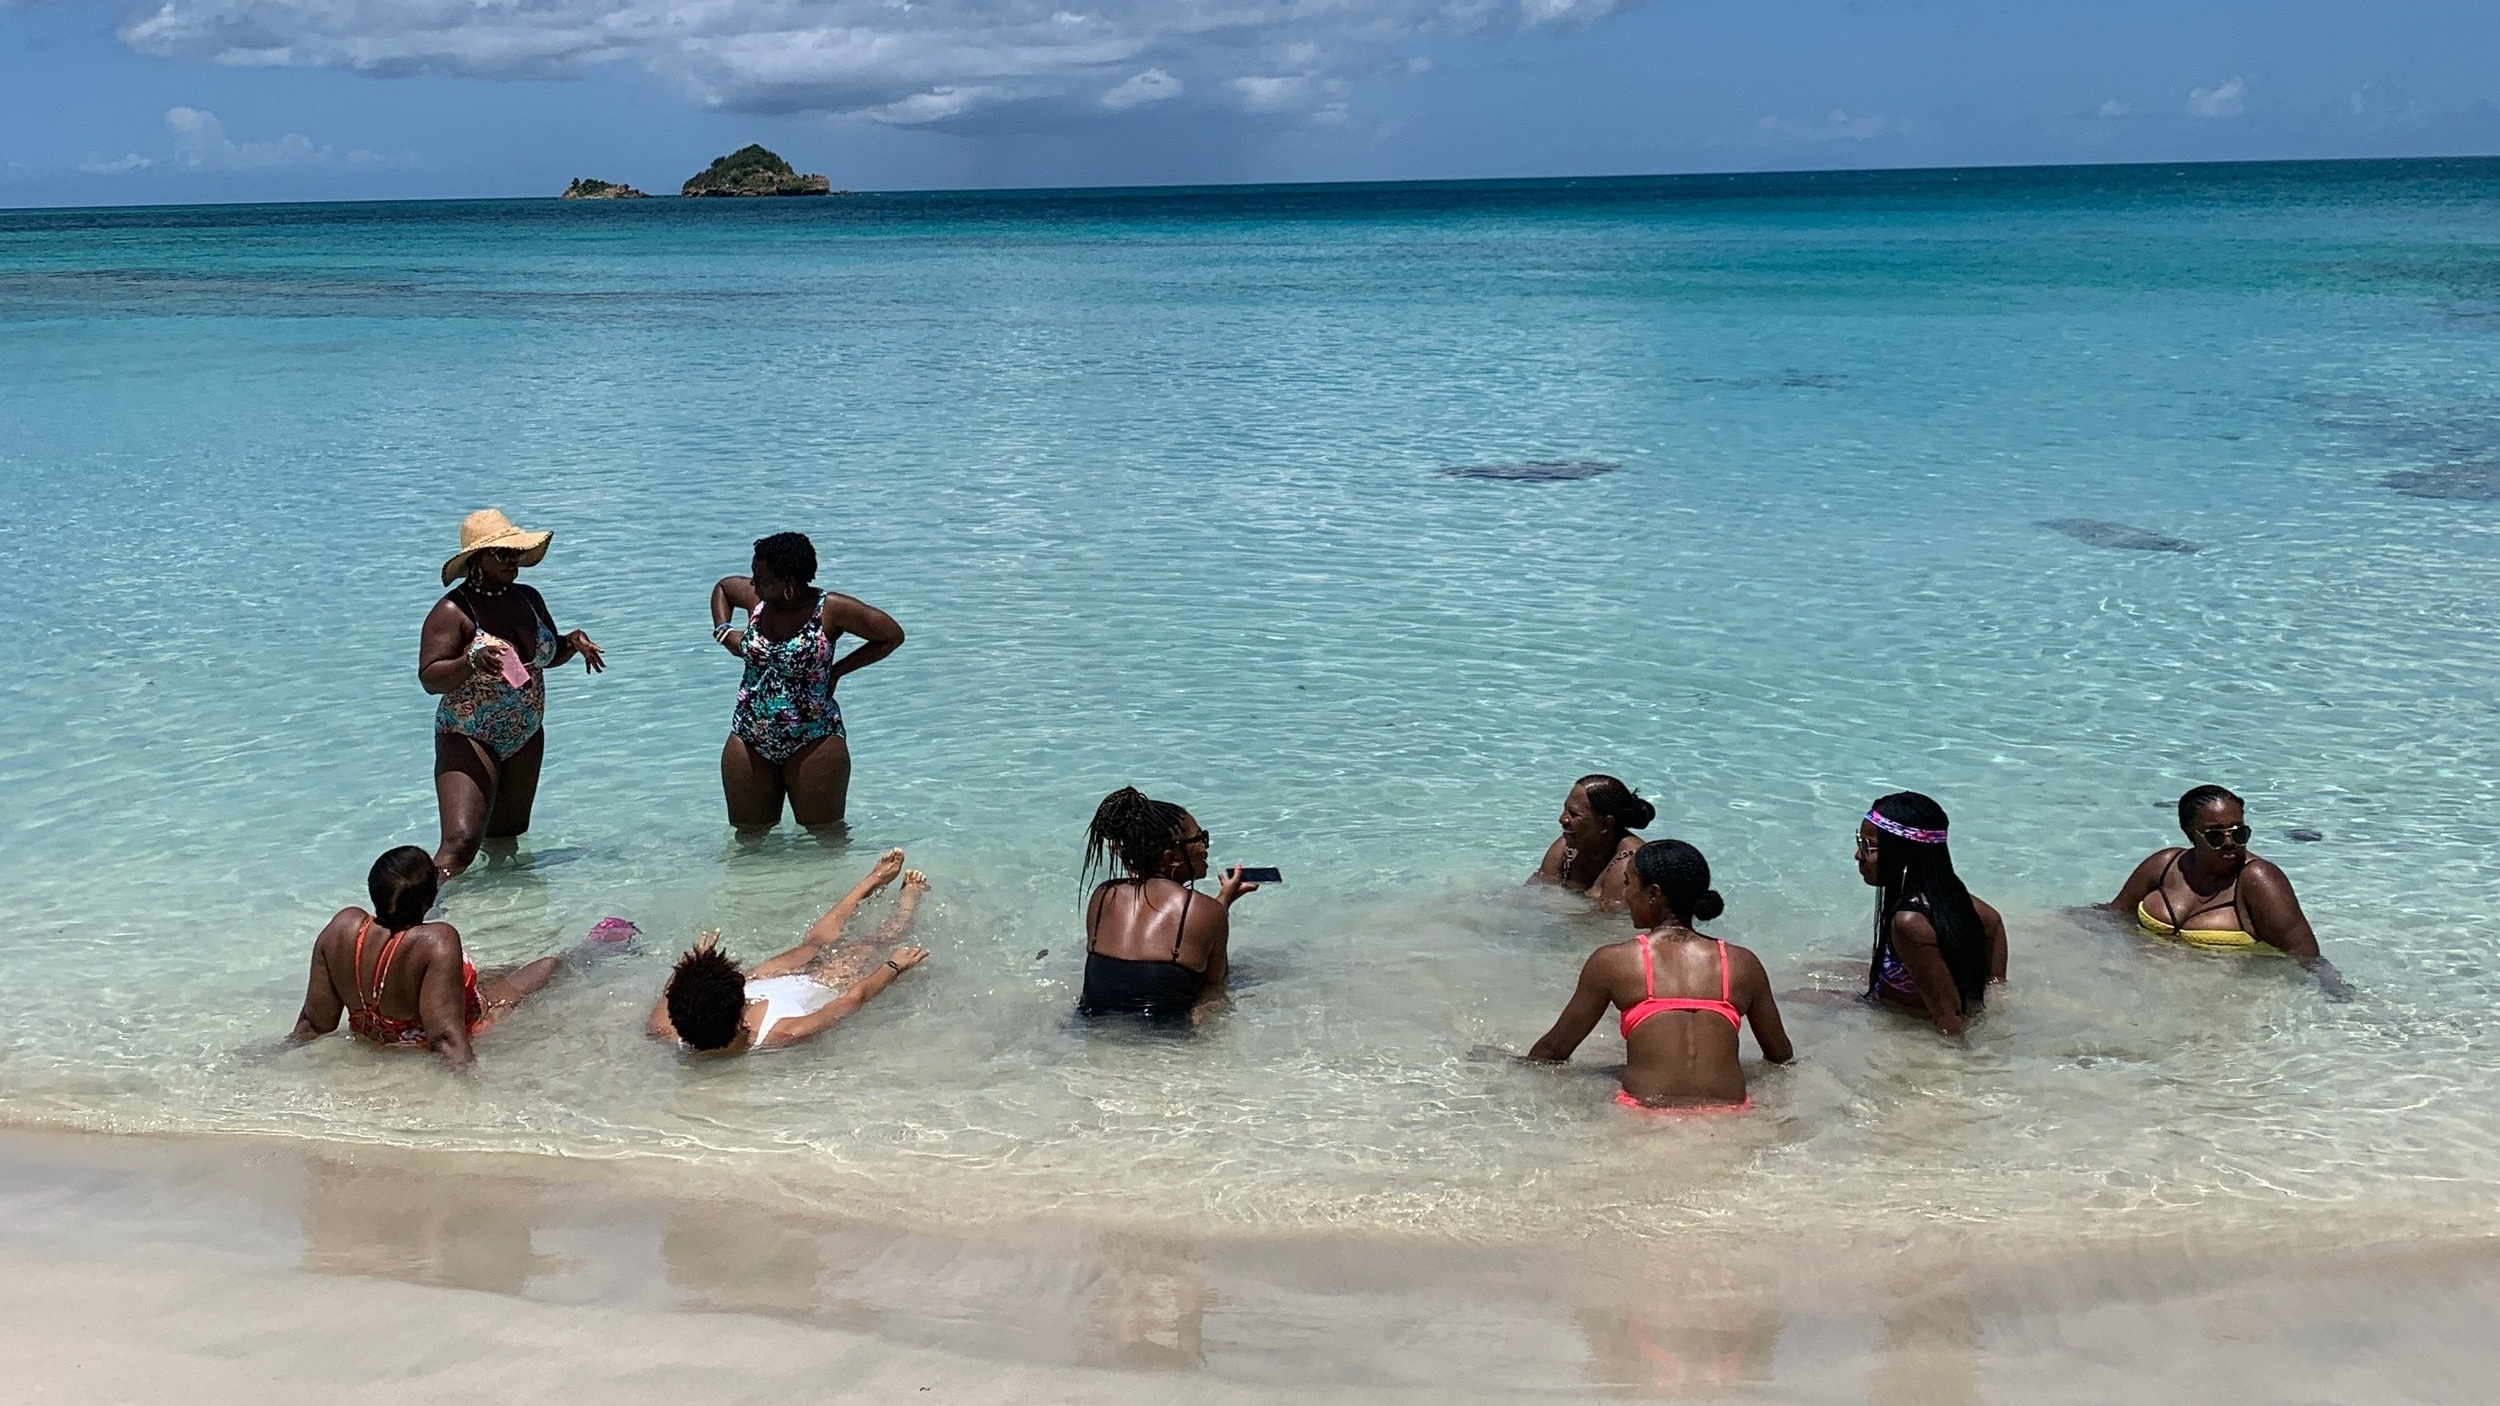 Catamaran group excursion at Pearn's Point in Antigua, August 2019